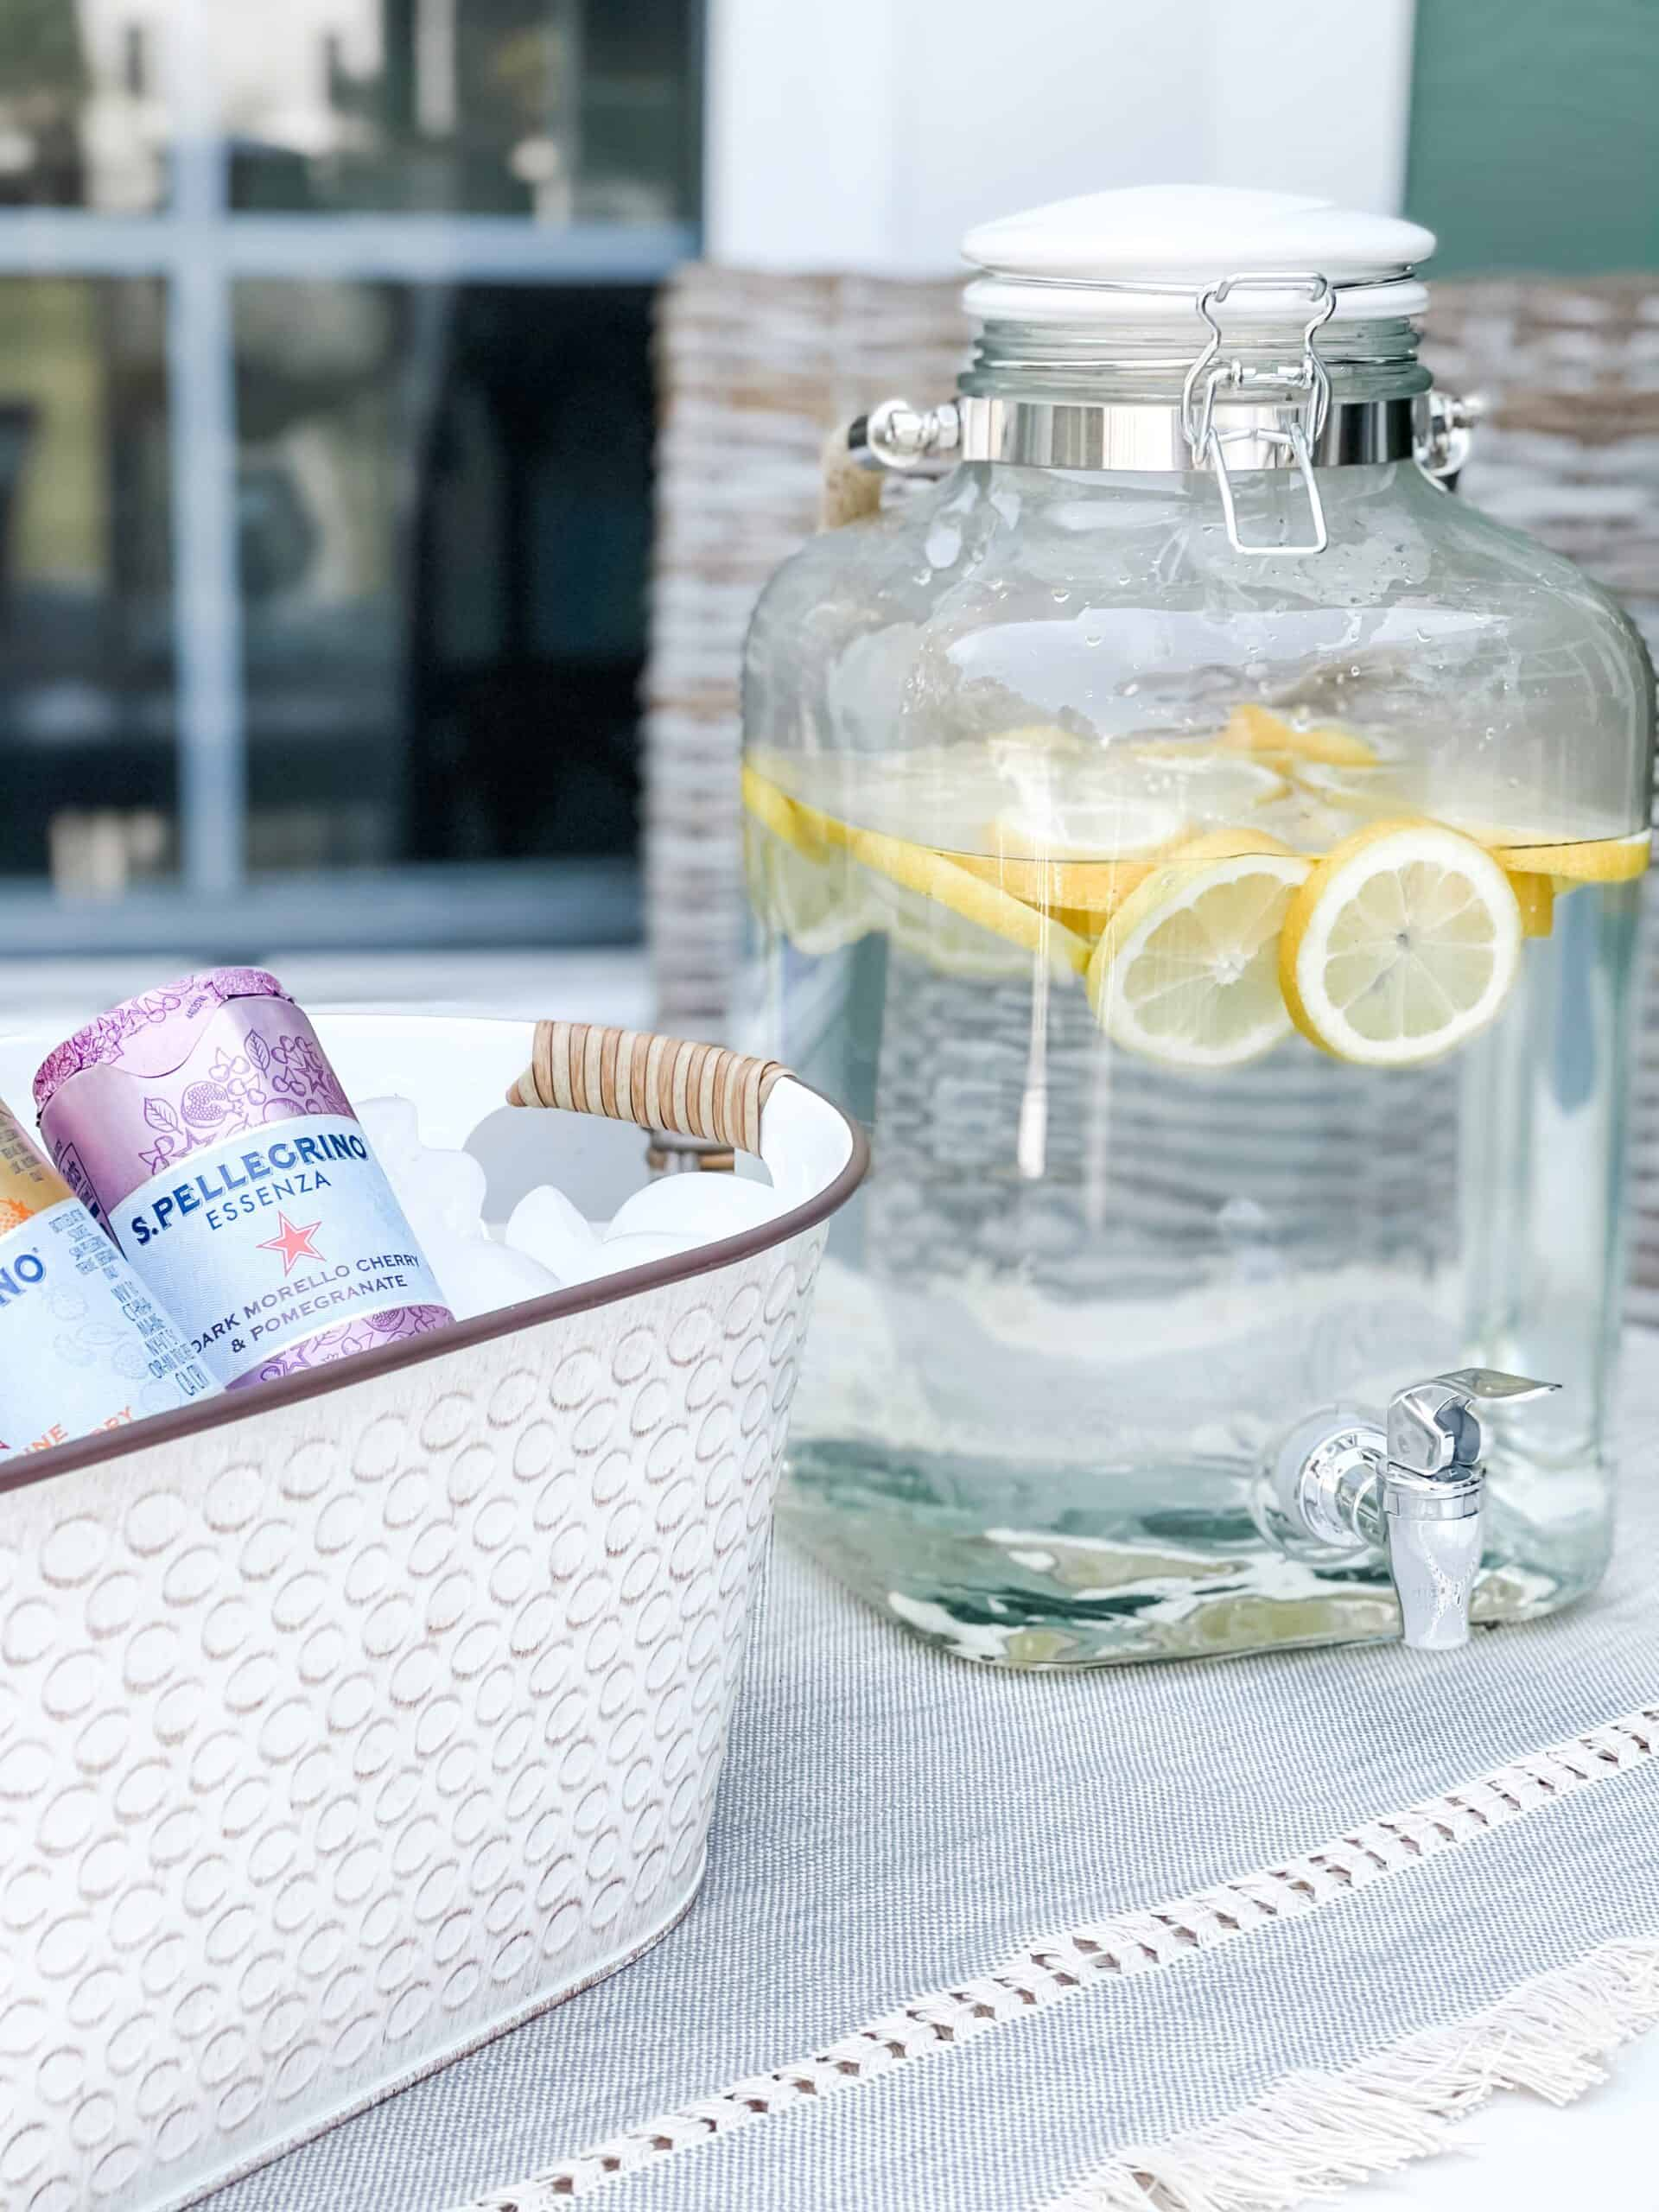 Lemon water and drink tub from Walmart.